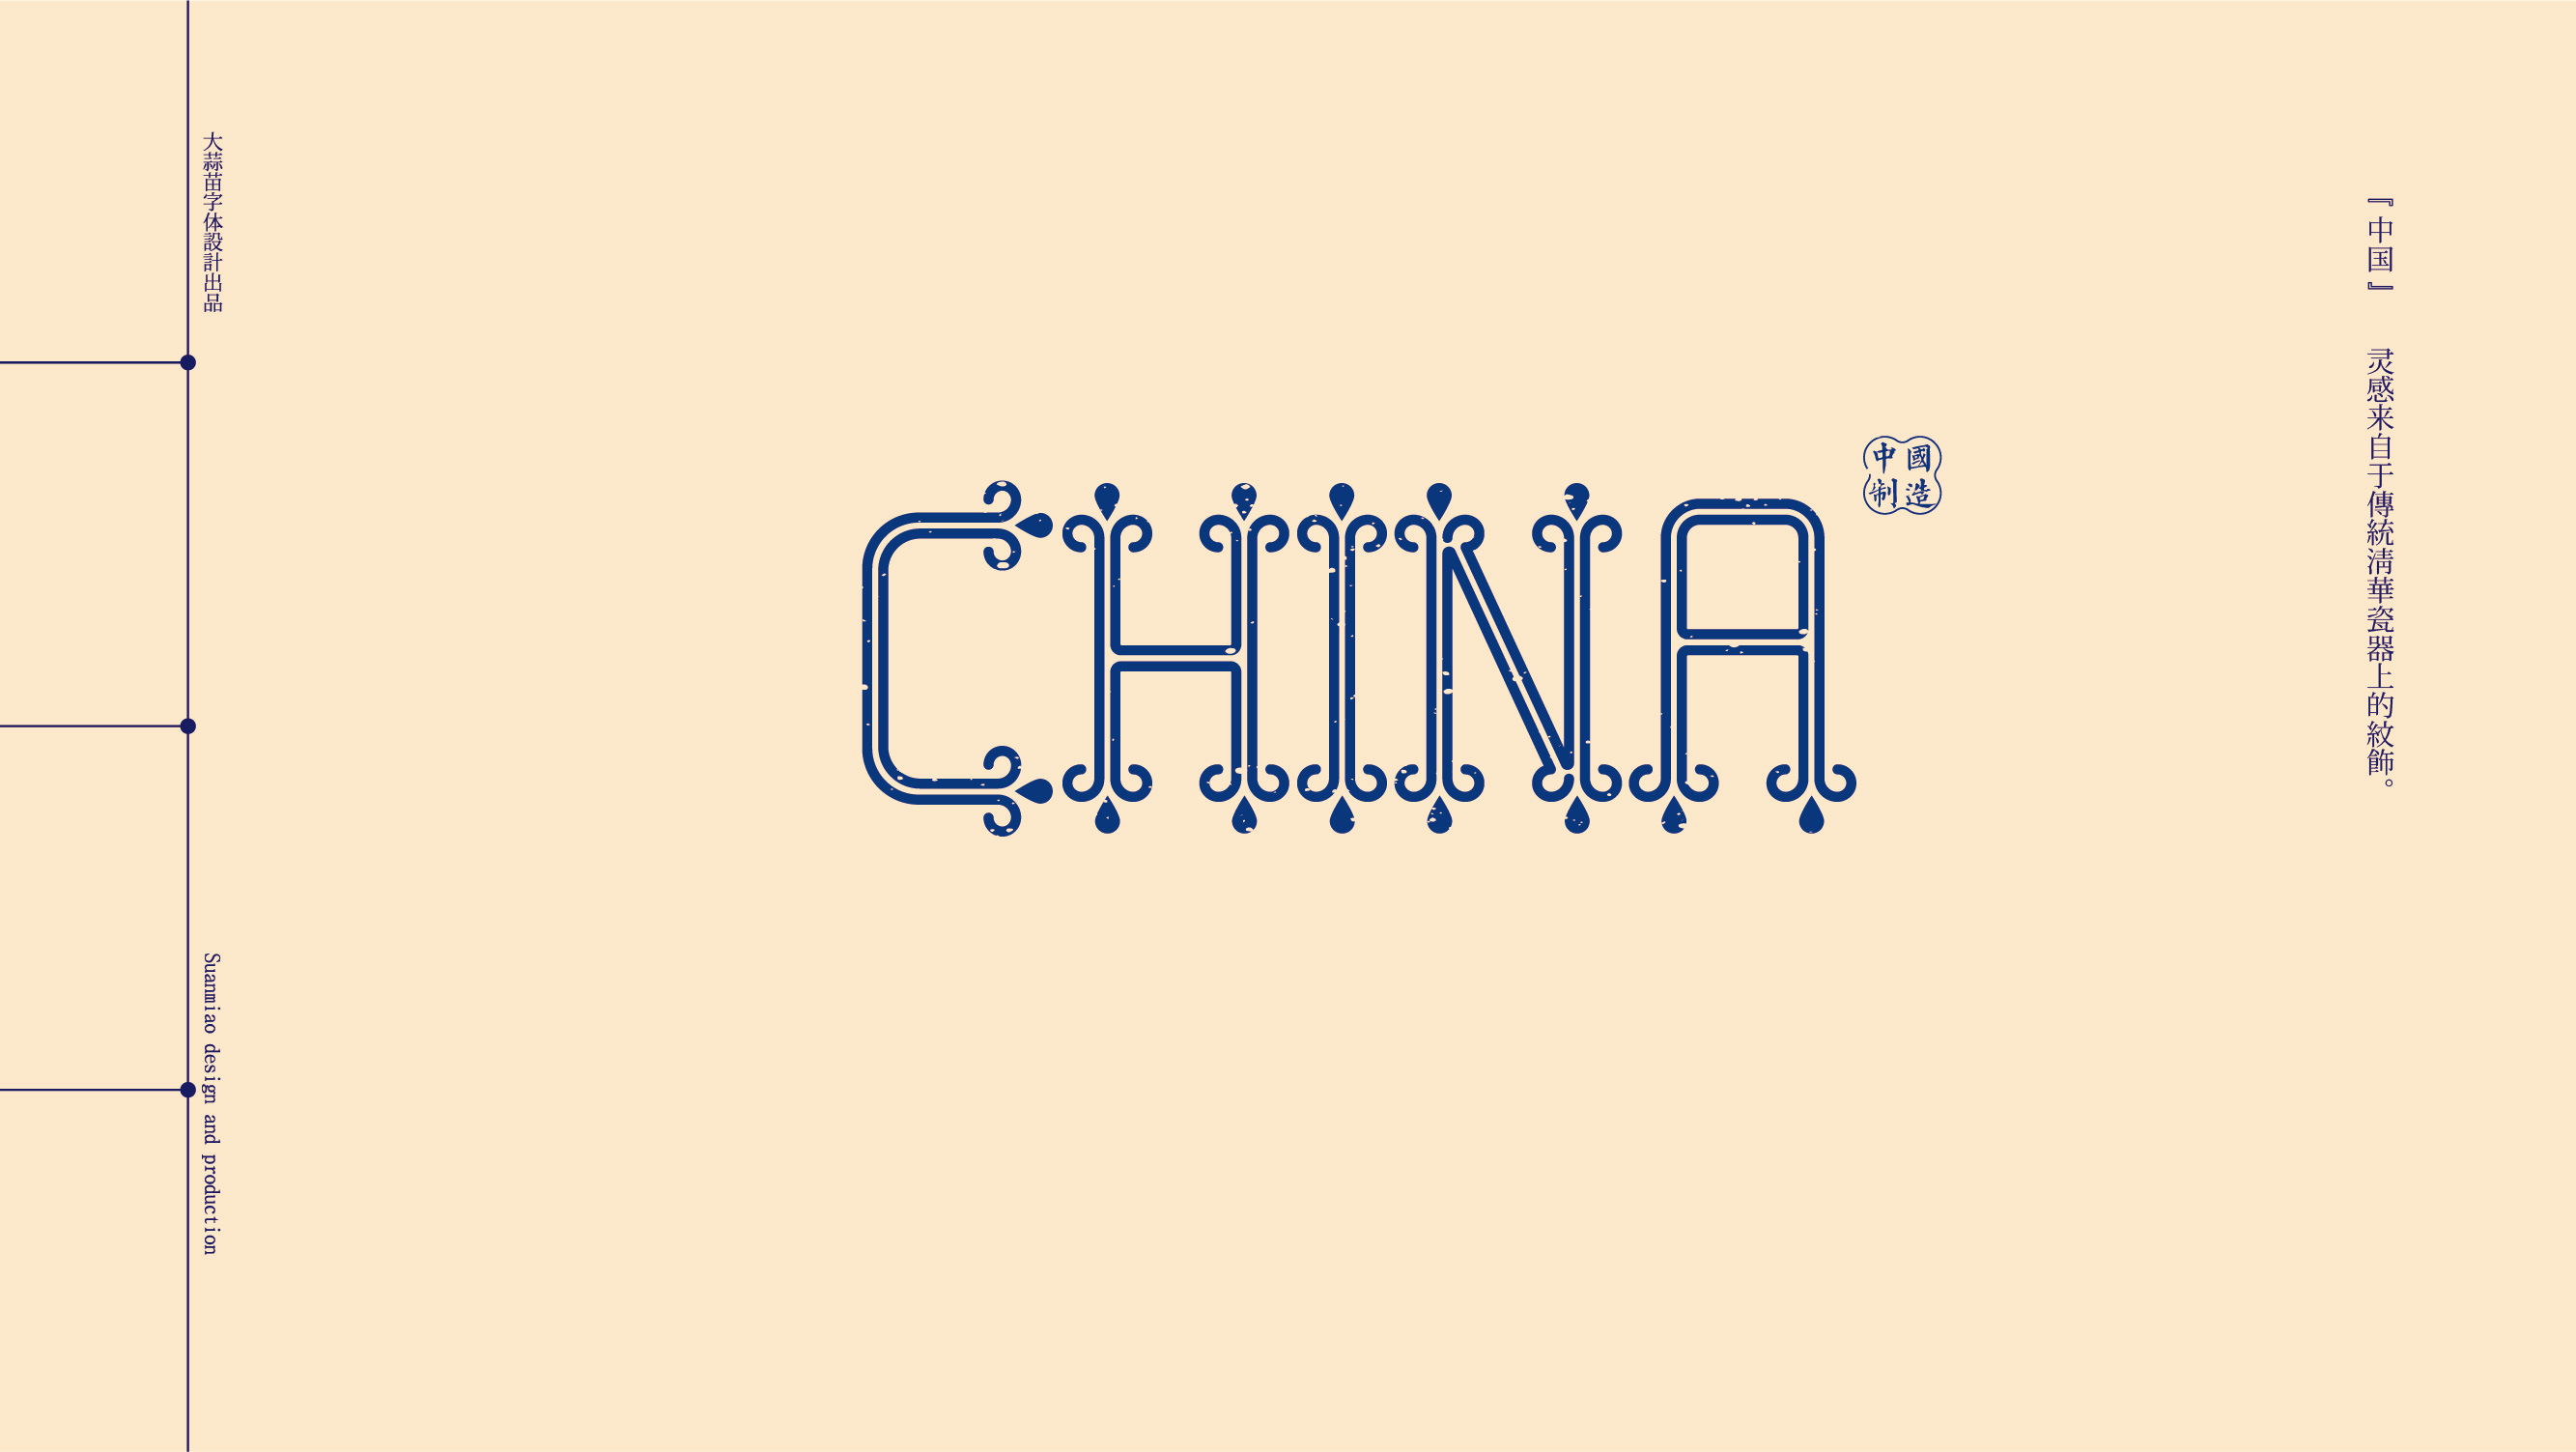 20P Collection of the latest Chinese font design schemes in 2021 #.166